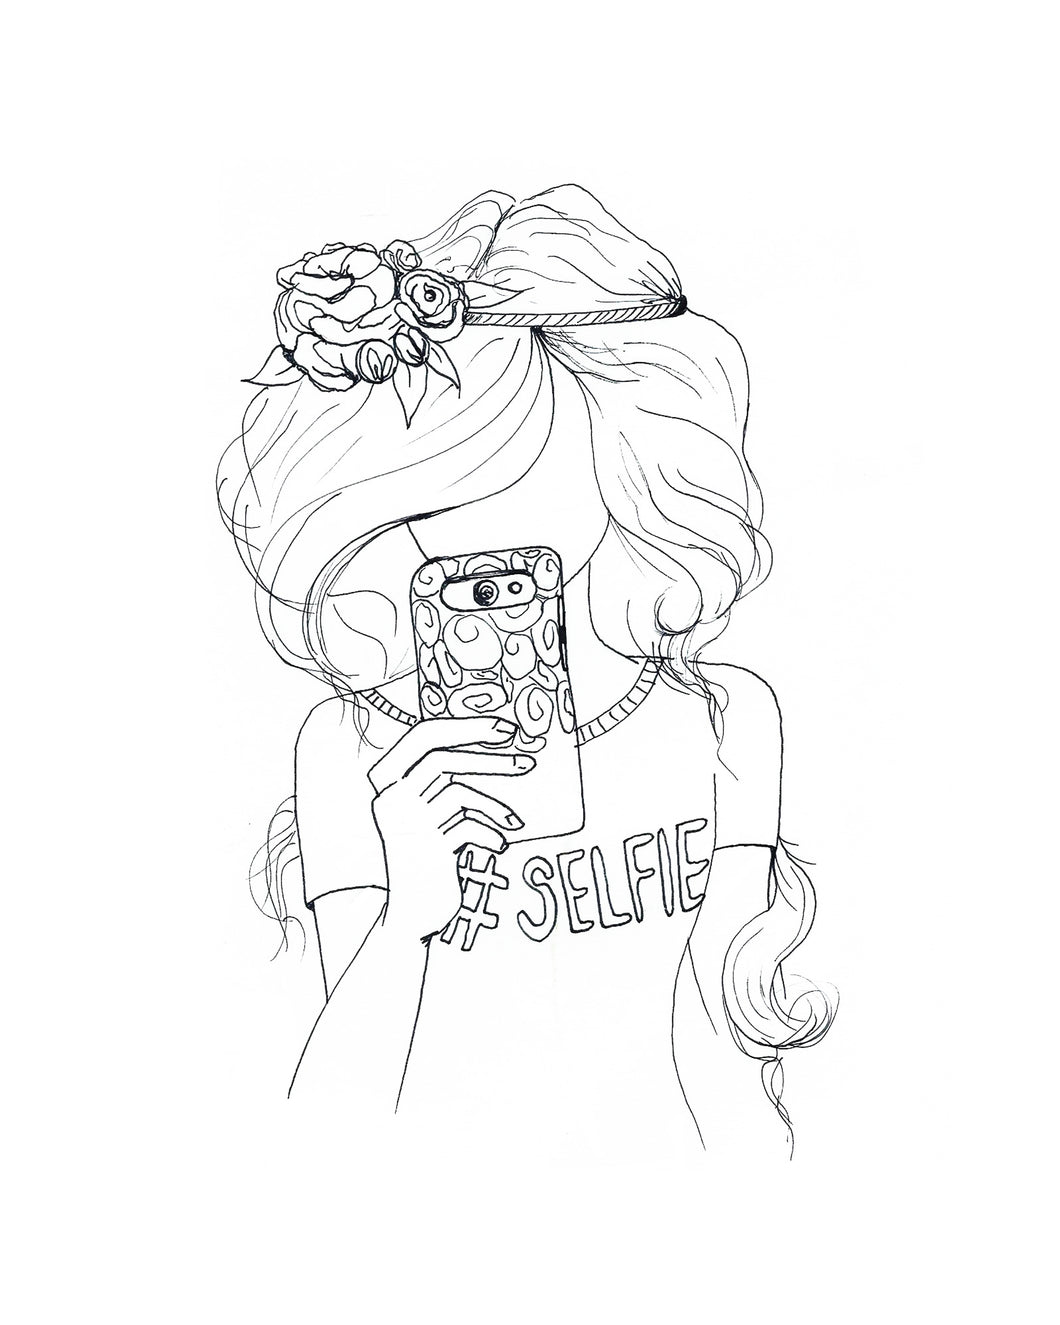 Hashtag Selfie Coloring Page